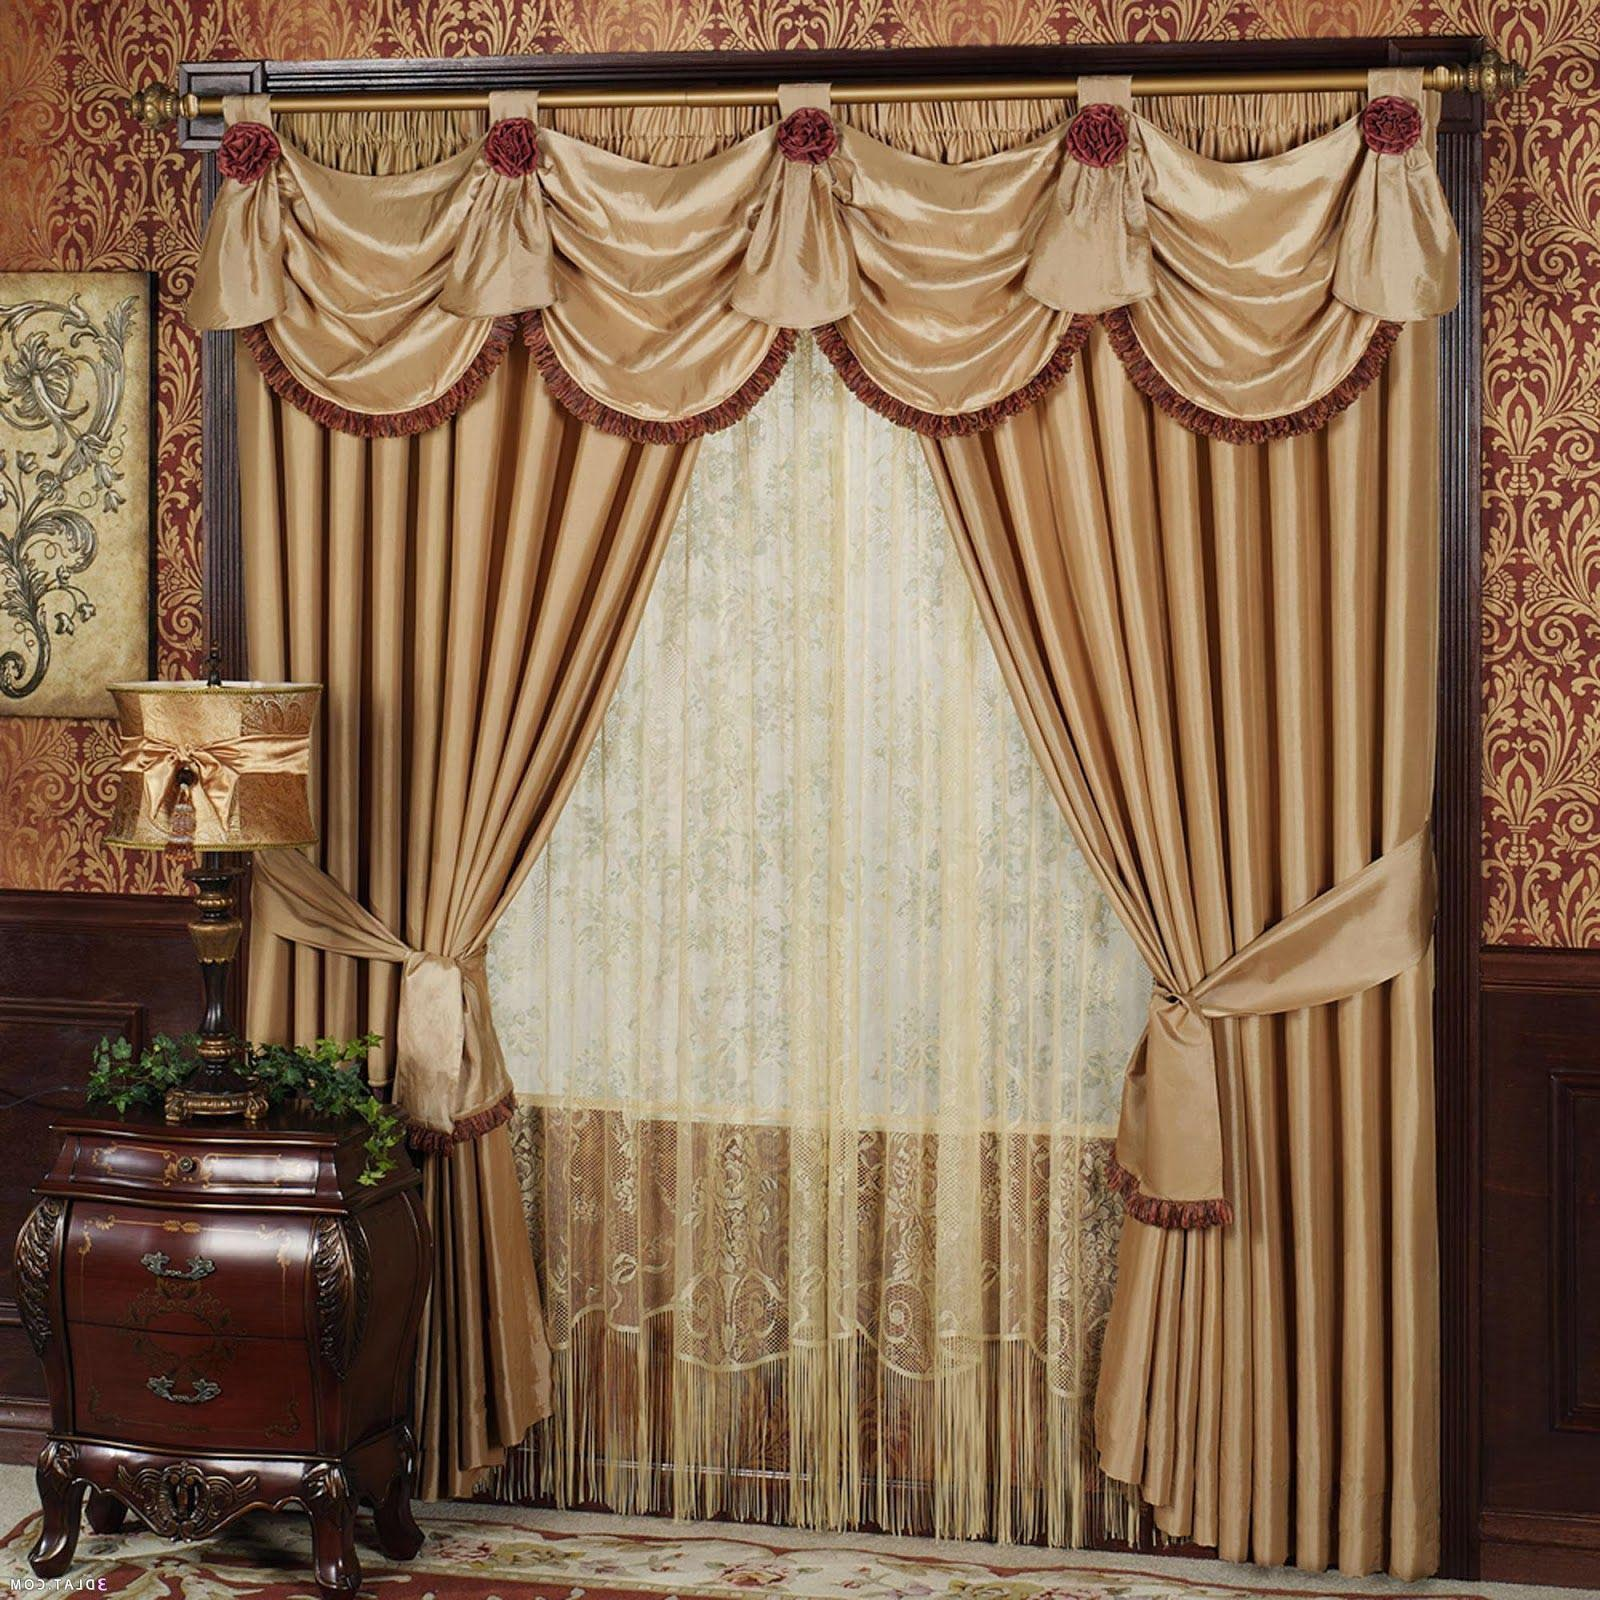 Living room drapes with valances window treatments for Living room valances